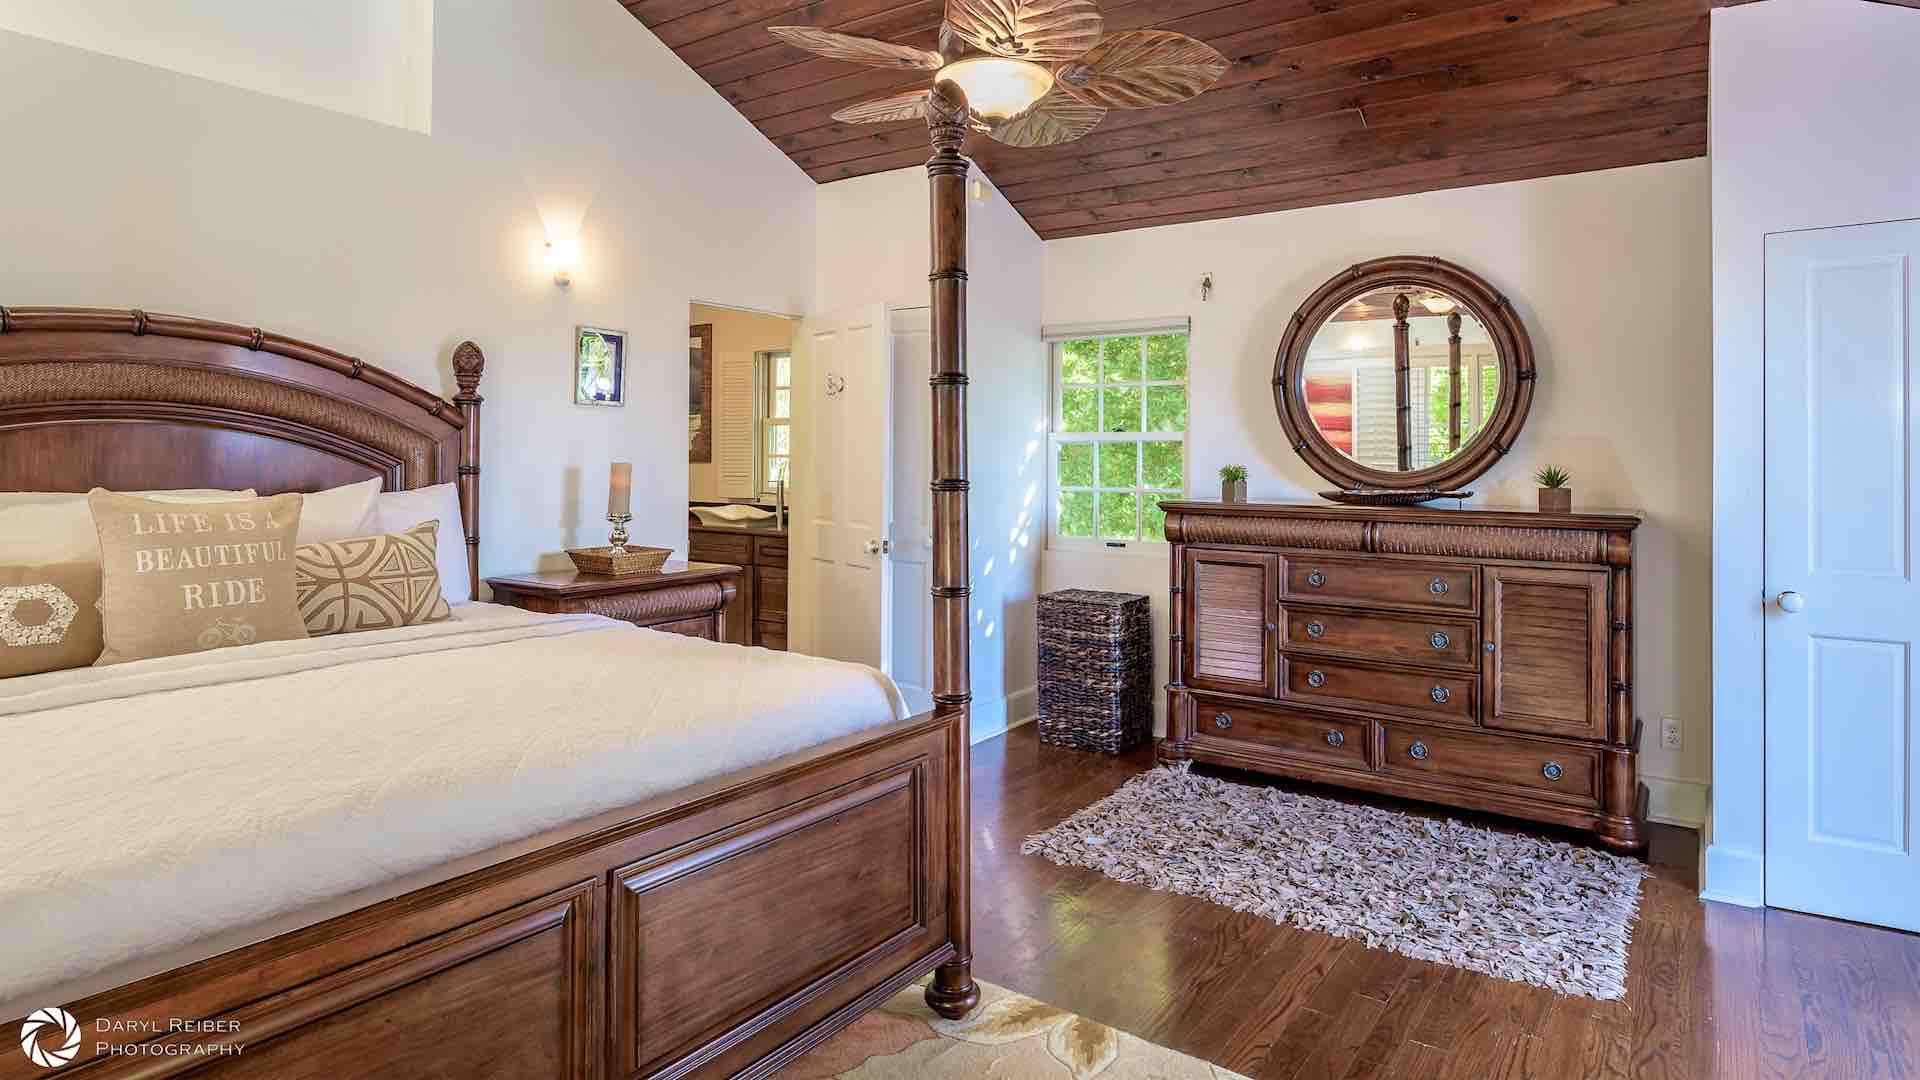 The master bedroom also has two closets and an en suite bathroom...